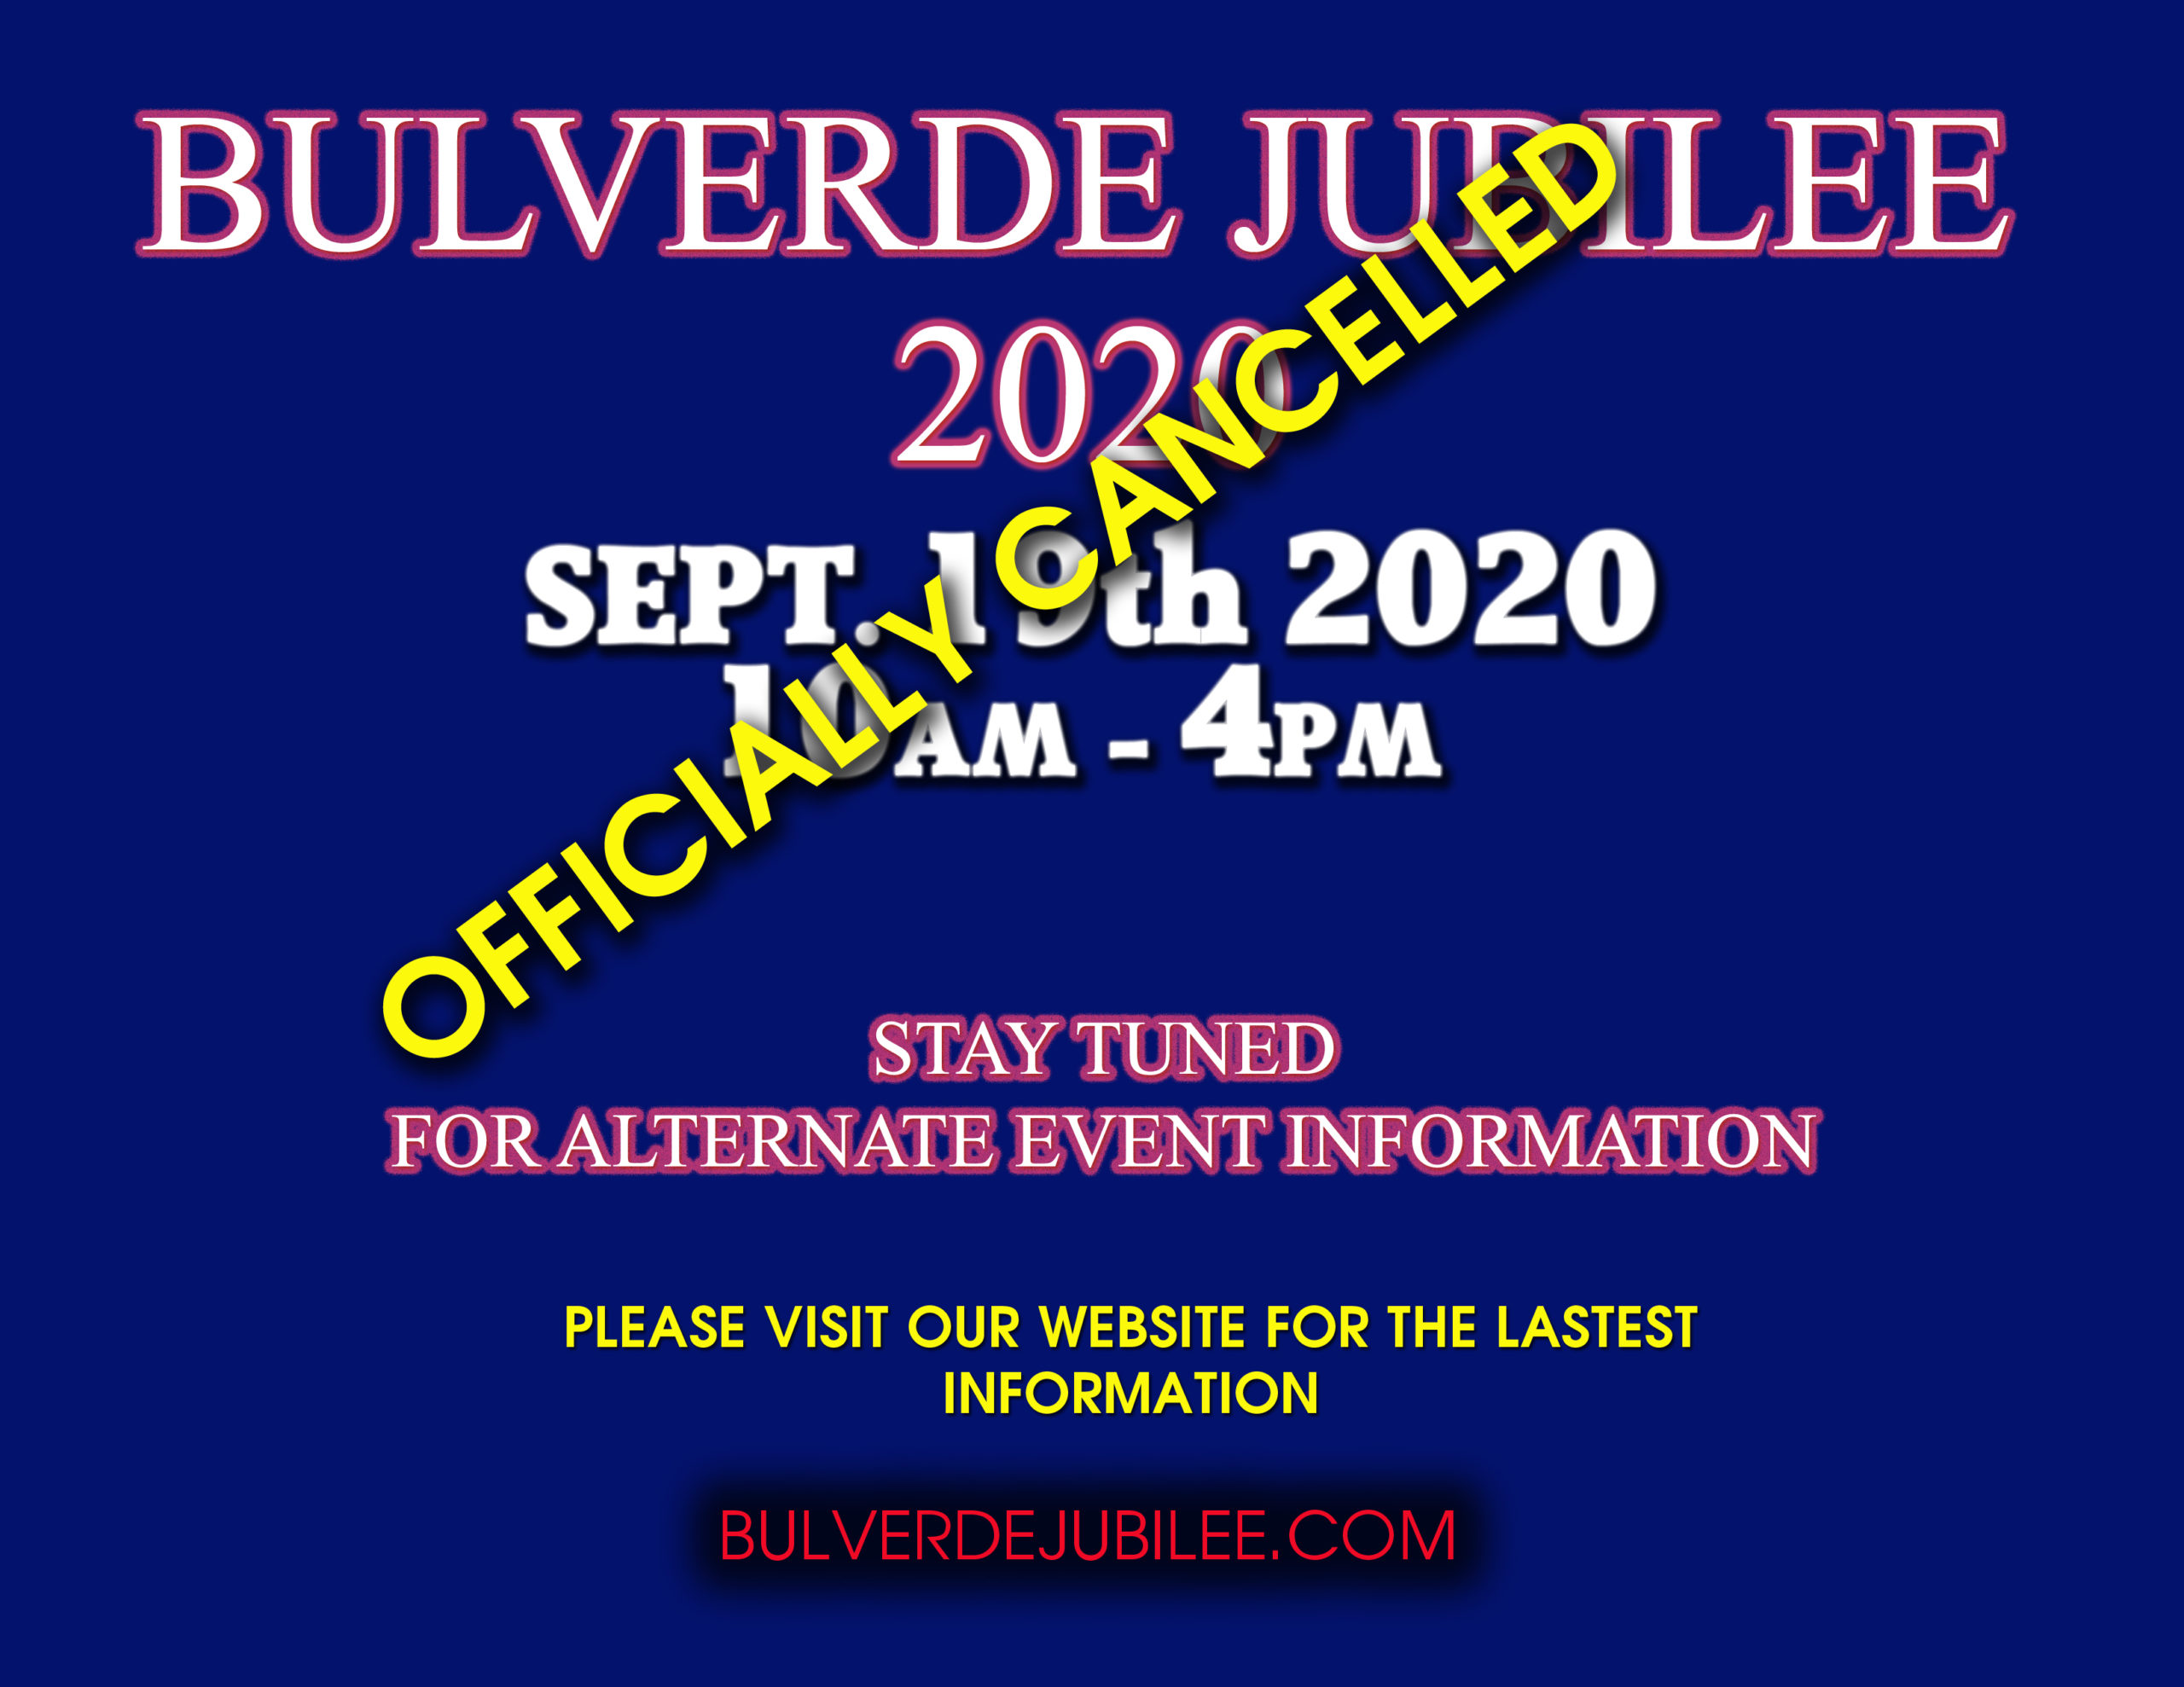 AD FOR july jubilee 2020 save the date back 600 dpi